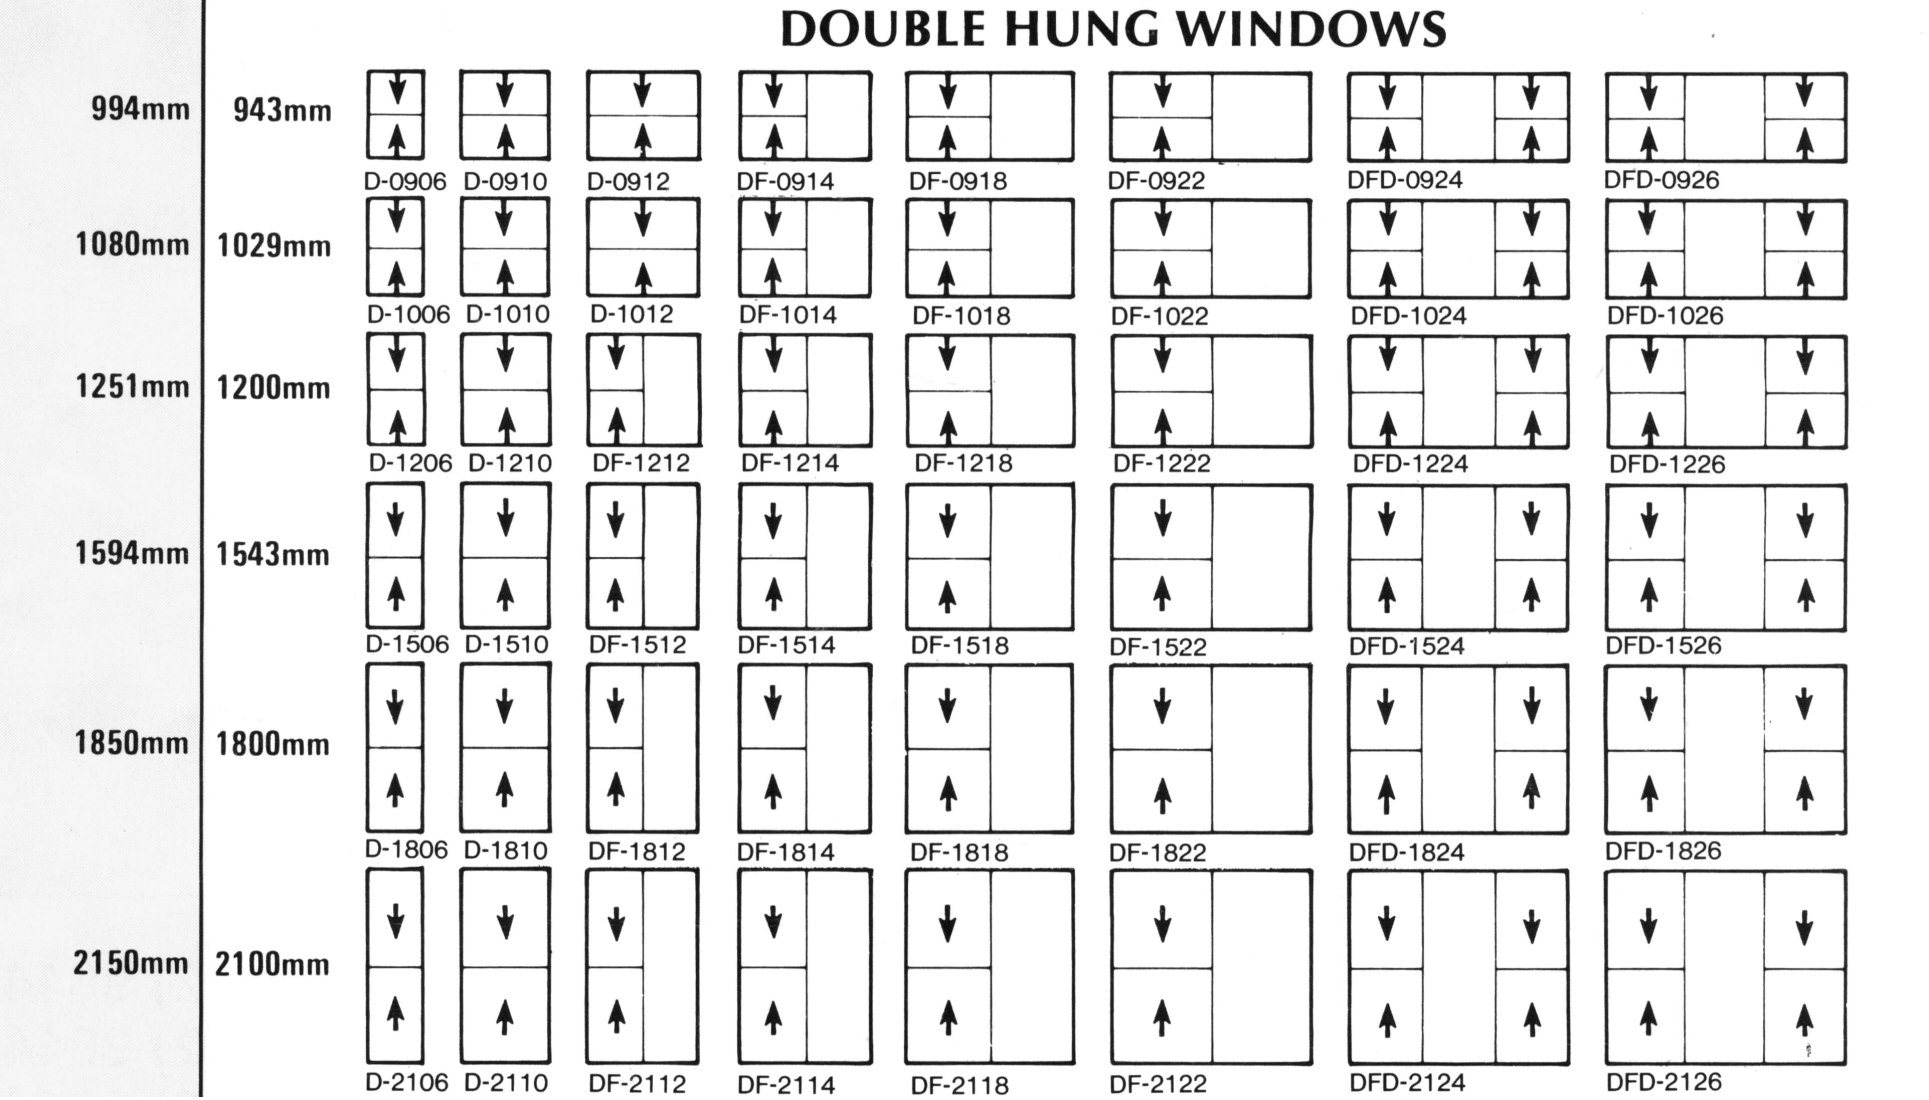 Standard casement window sizes chart image -  2a2a2a Double Hung Window Rainbow Windows Andersen Windows Rough Opening Chart 5861 Picture 192911005861